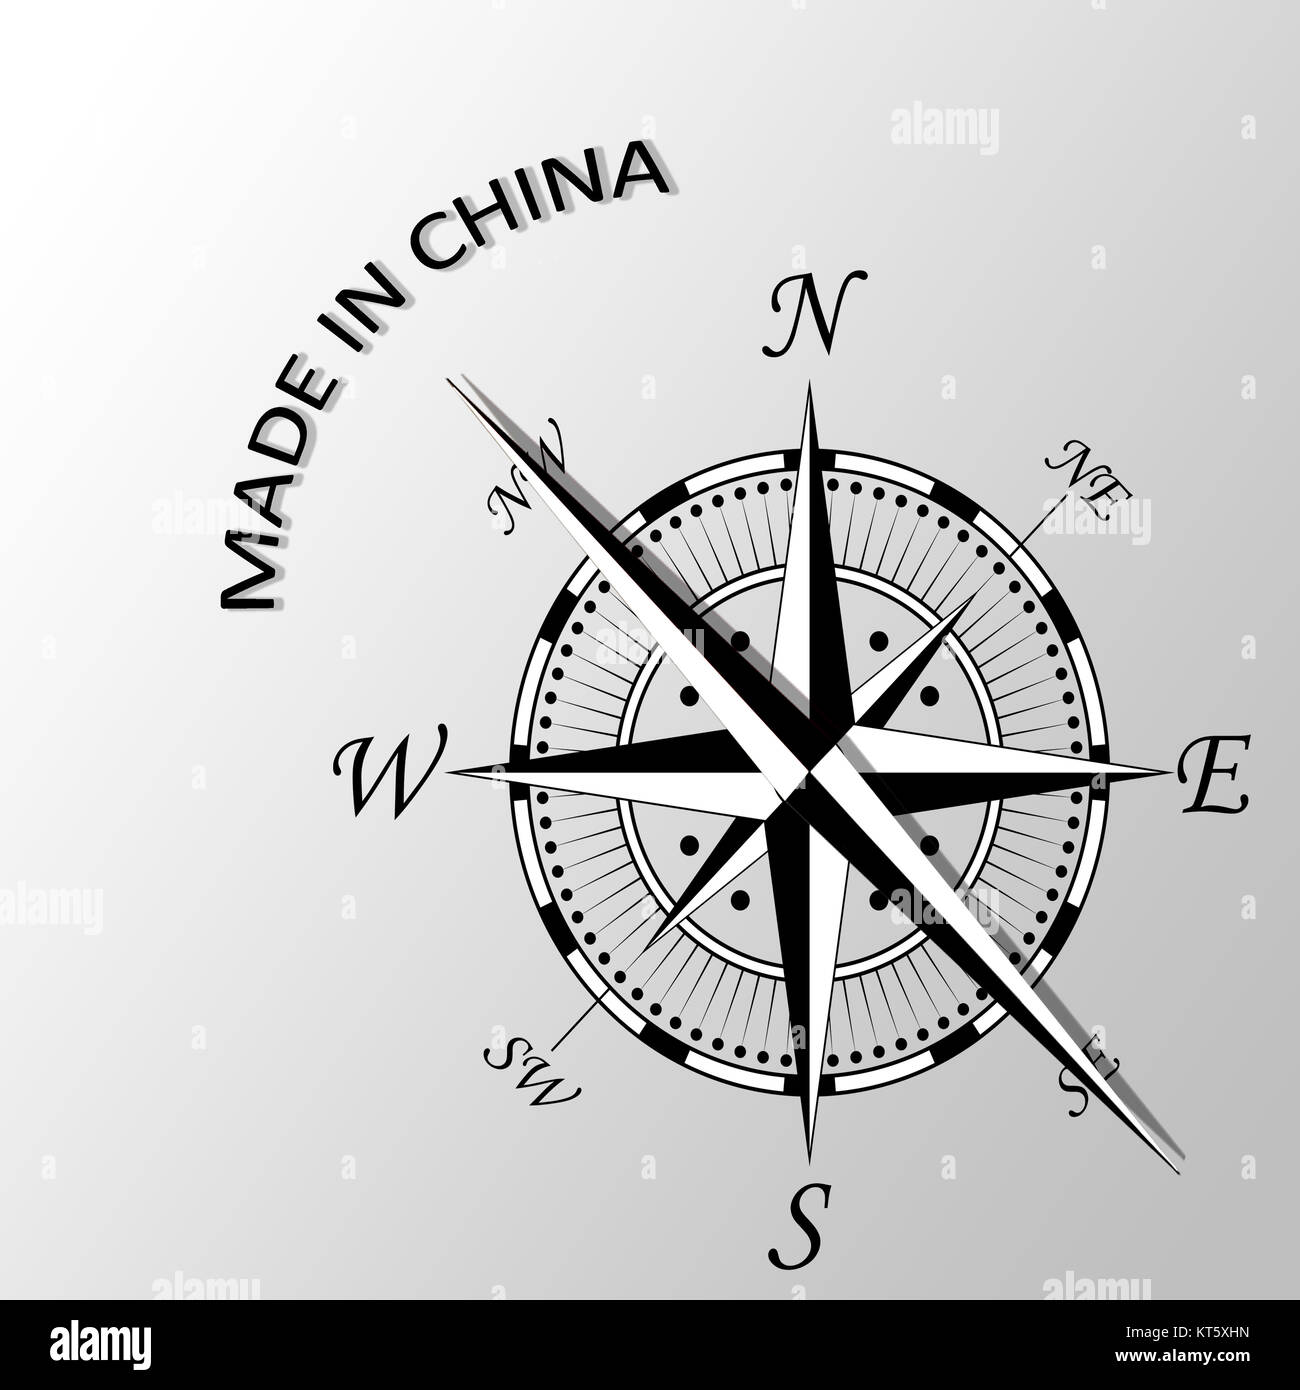 China Map Compass Stock Photos Images Alamy Printed Circuit Board Gua Illustration Of Made In Written Aside Image